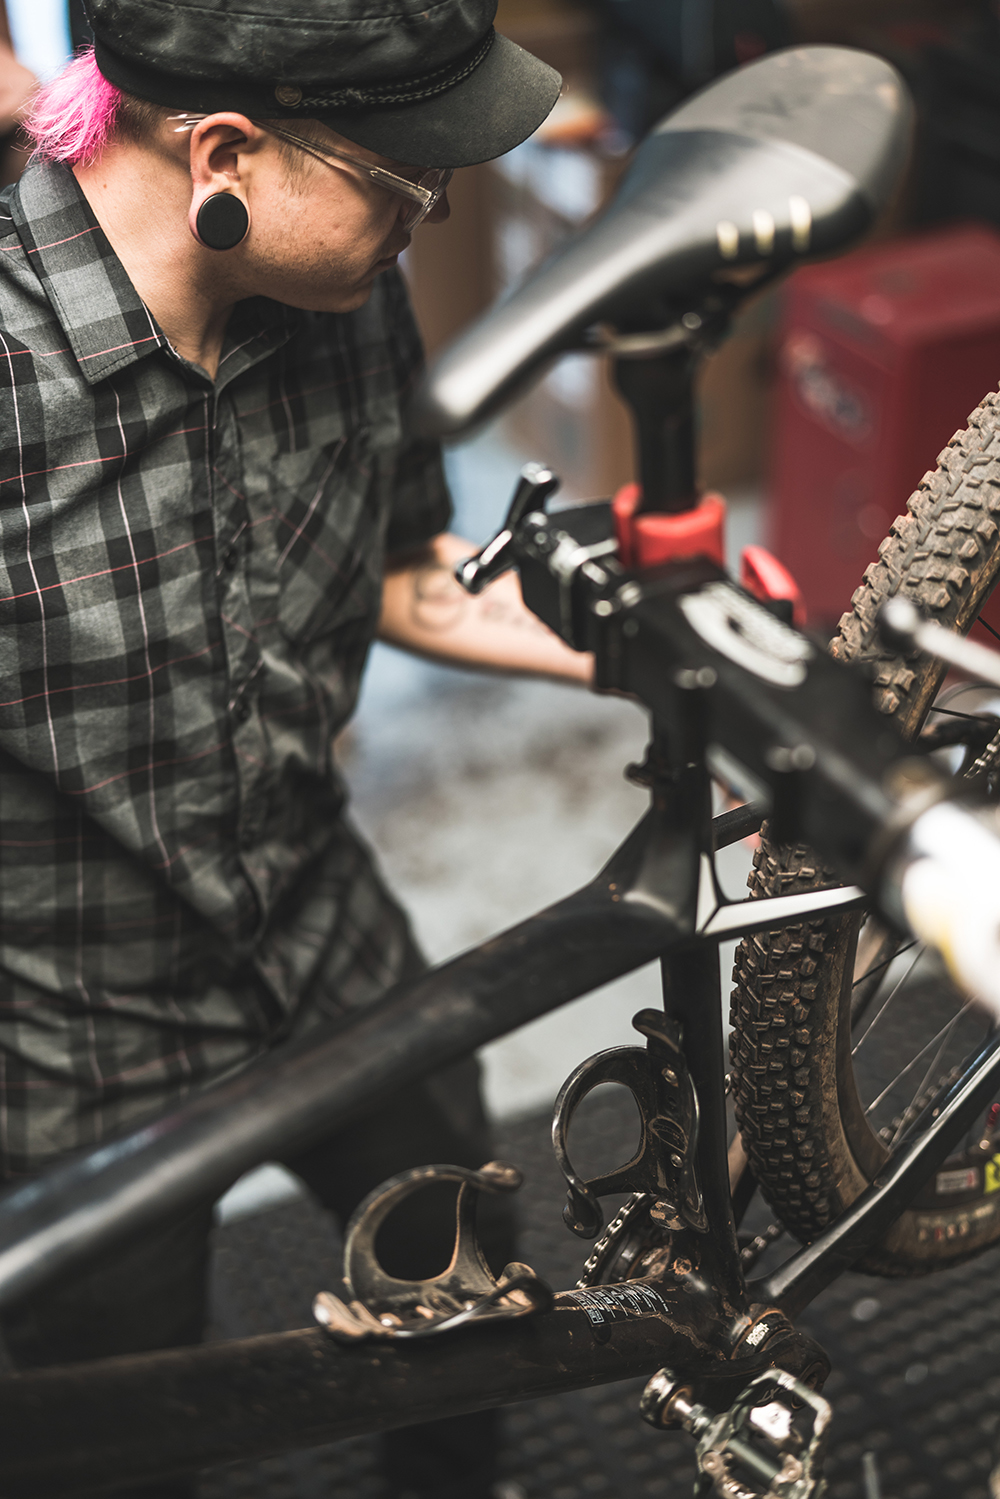 Bike Repair OKC - Best Bike Shop Oklahoma City